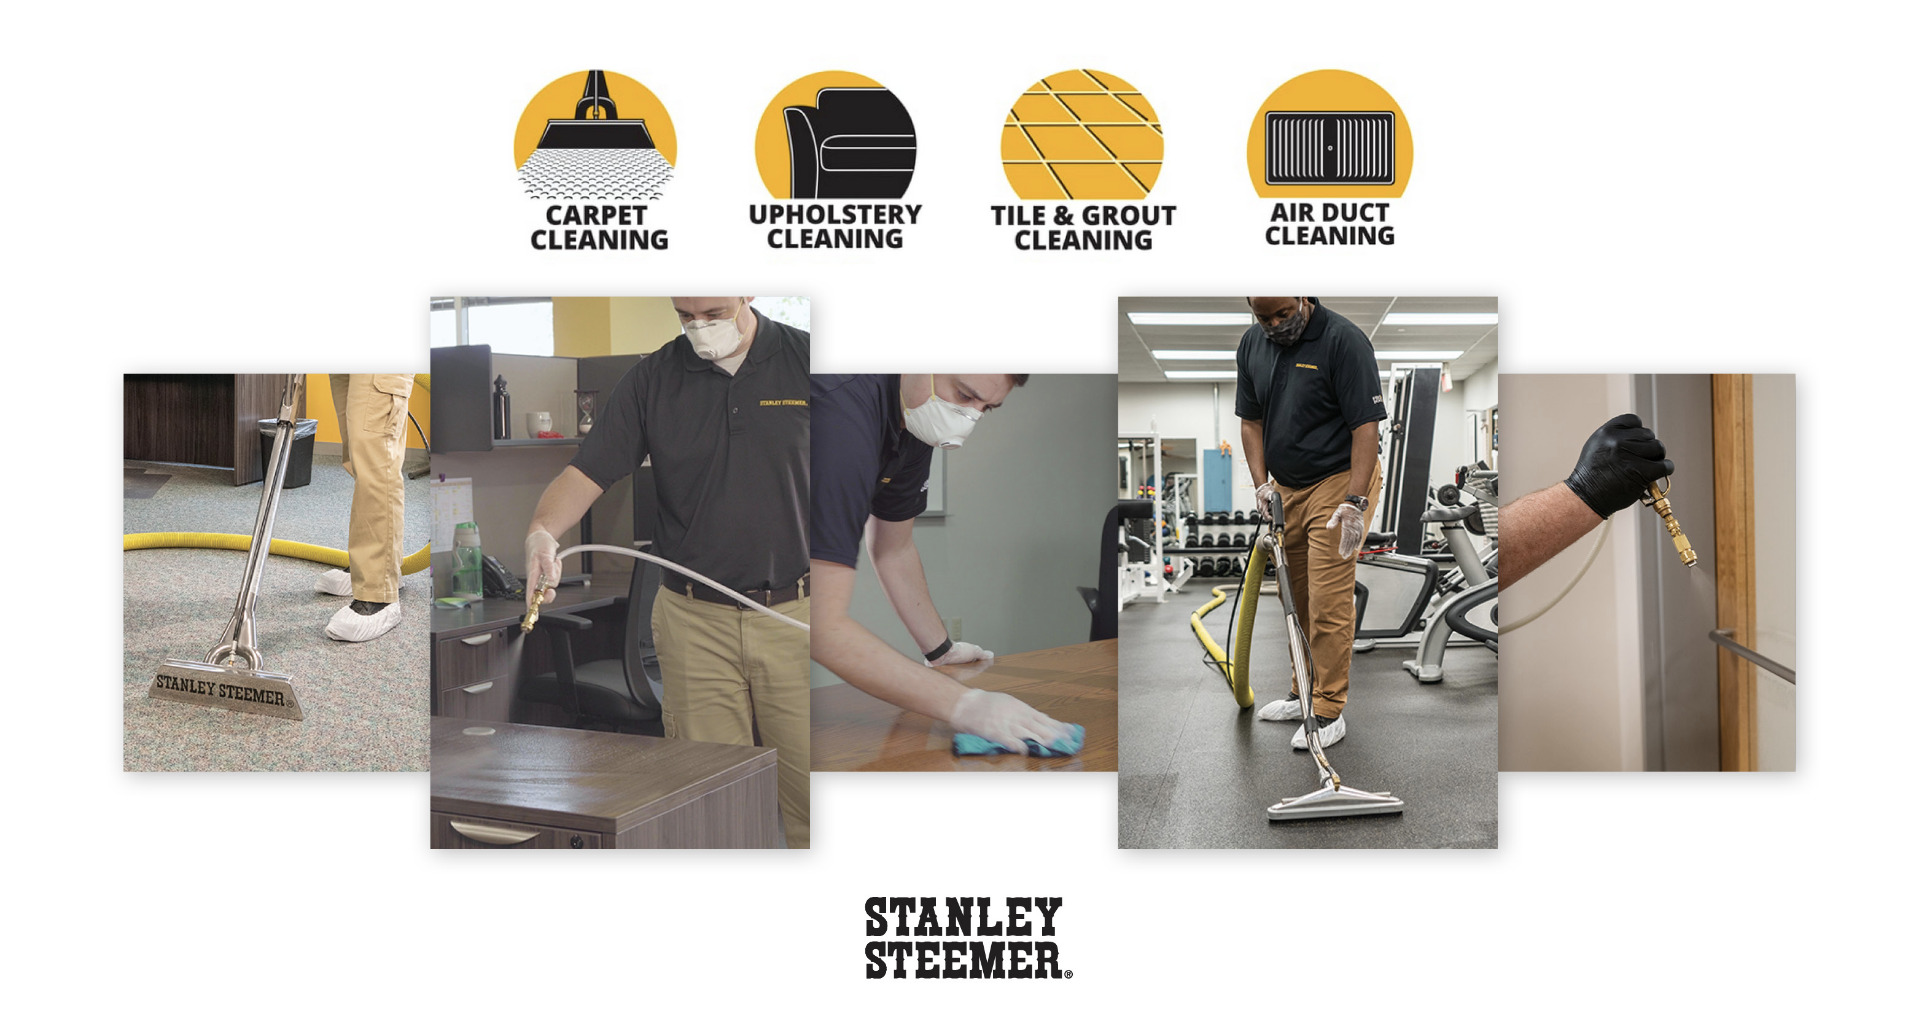 Stanley Steemer uses an EPA Registered Disinfectant Cleaner to kill a broad spectrum of microorganisms providing clean, sanitary and healthy commercial spaces.